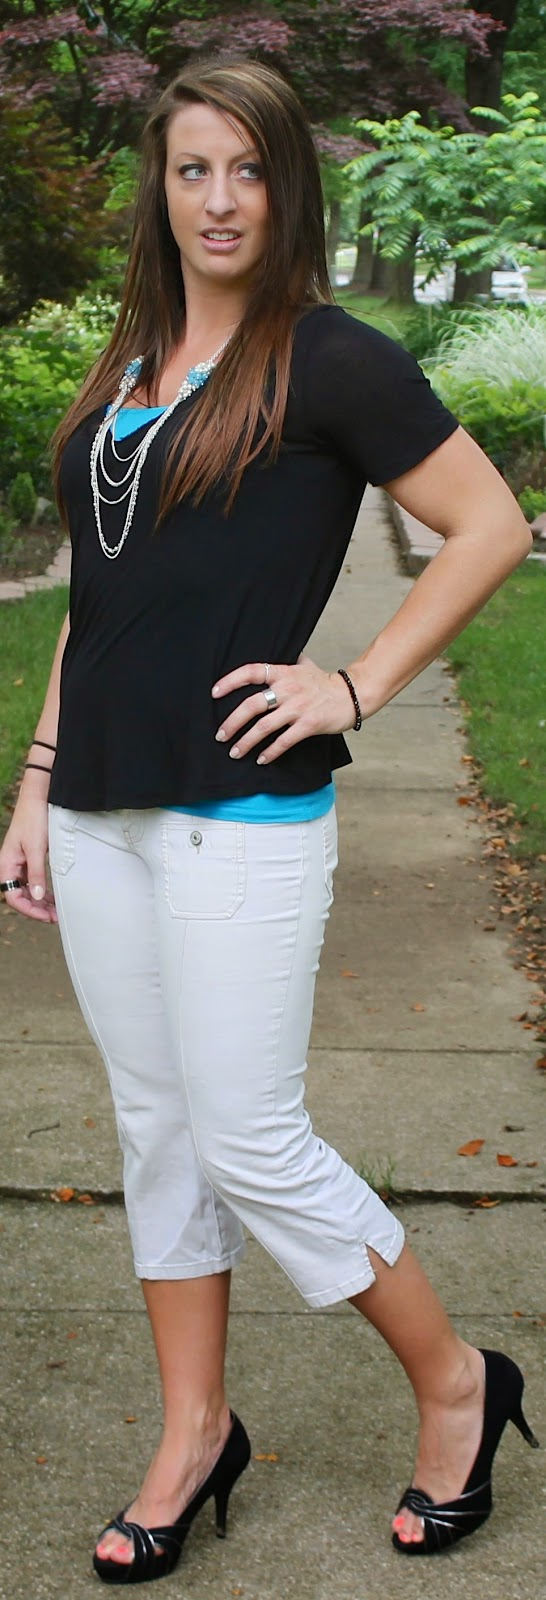 Sea of pearls LA, tiffany top, black shirt, outfit, fashion